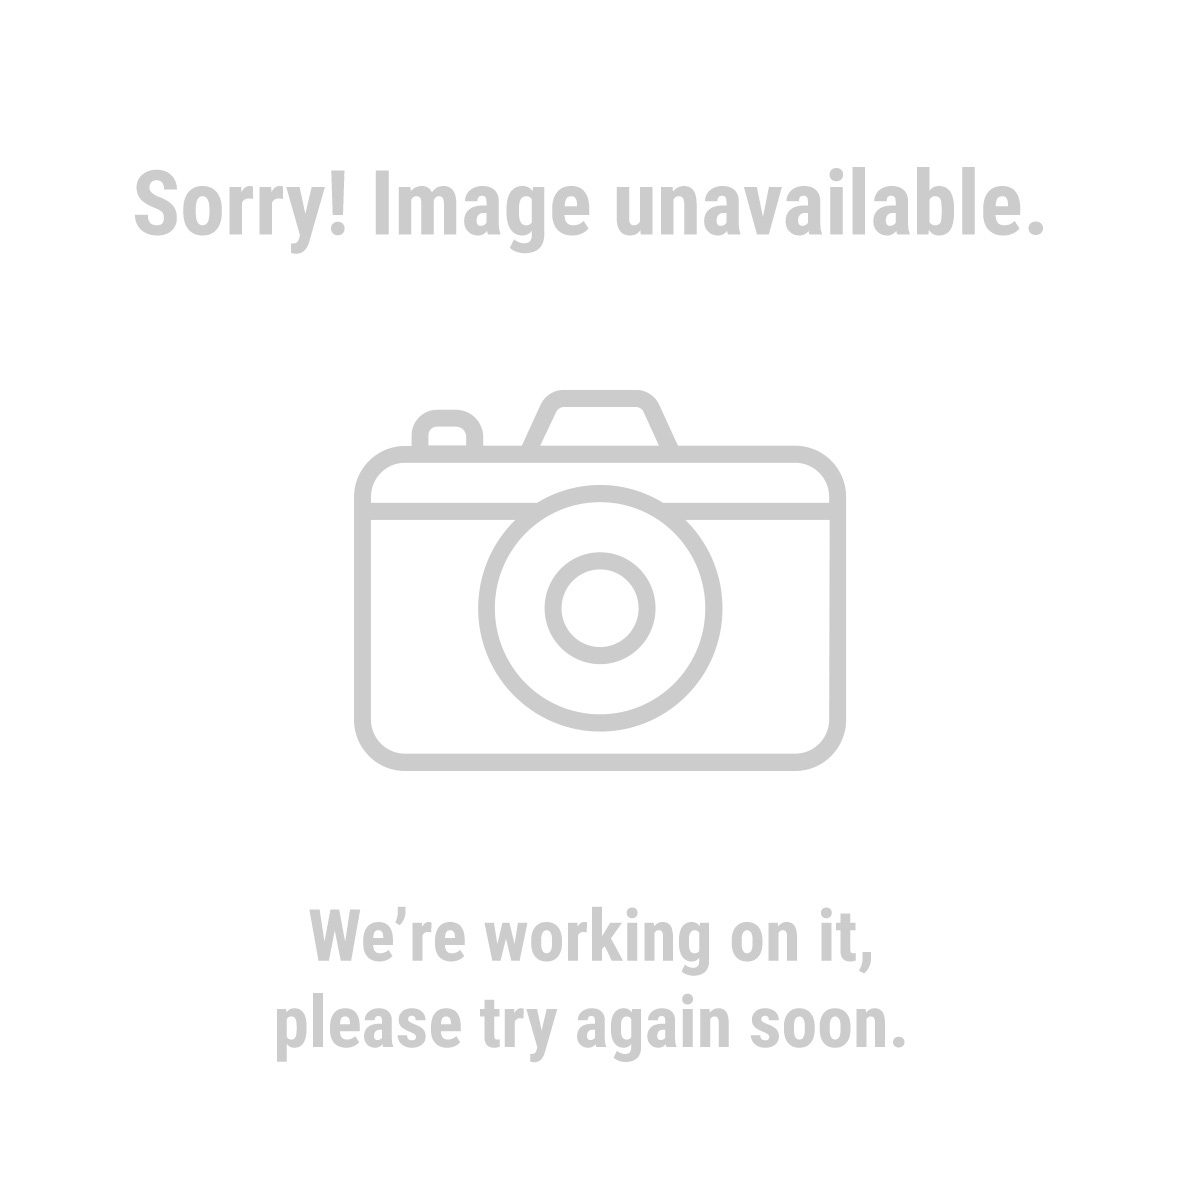 Western Safety Gloves 61556 Fire Resistant Welding Gloves